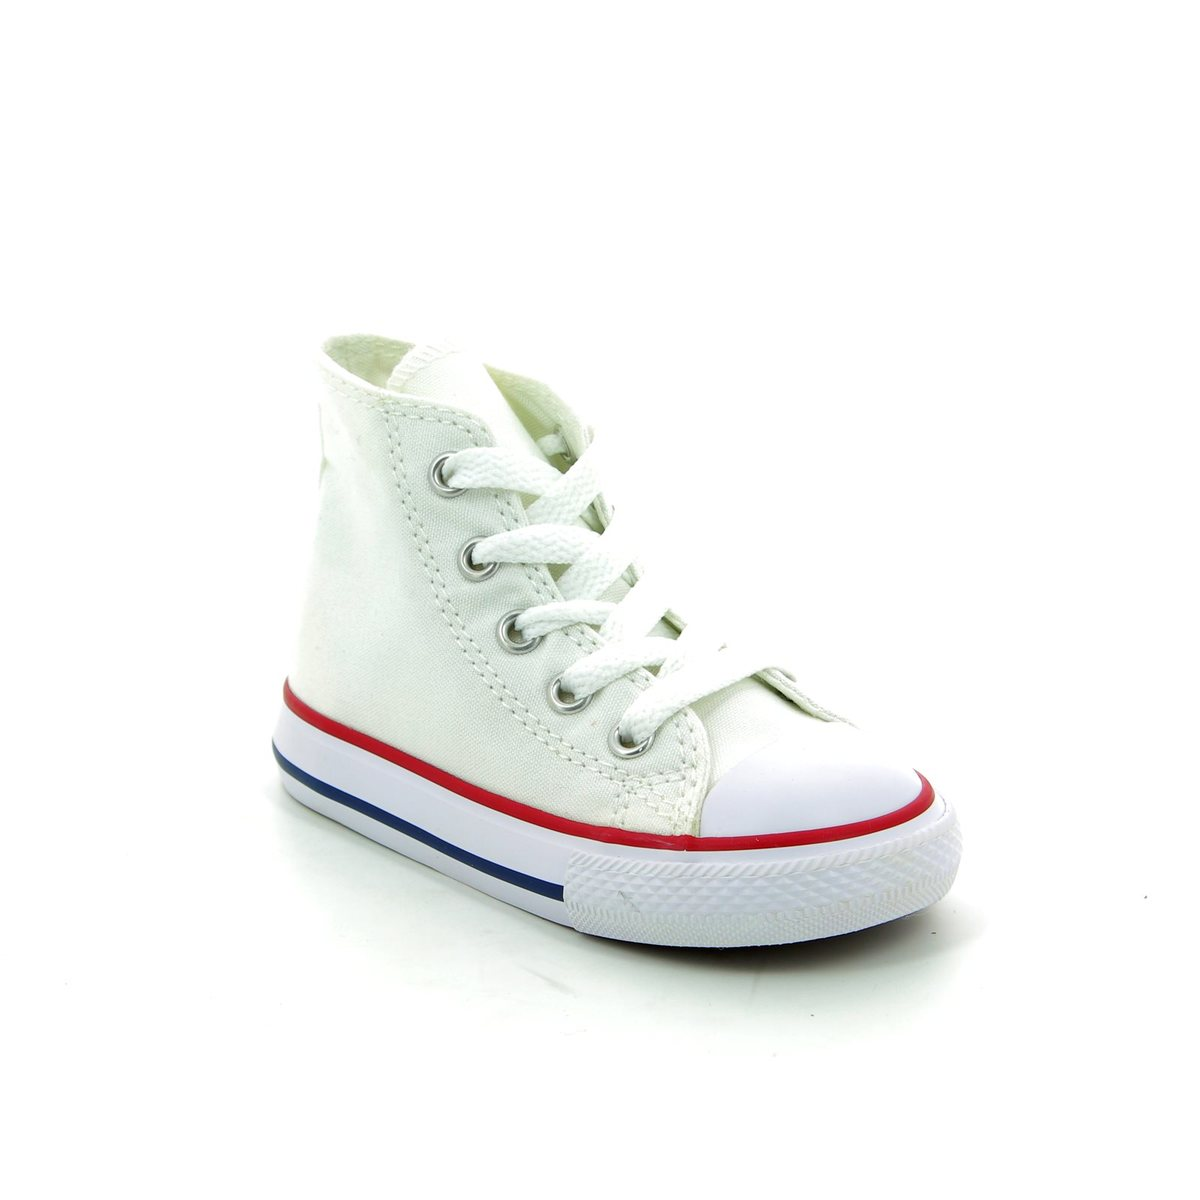 4457597c7be6 Converse Trainers - White - 7J253C 102 Infants Chuck Taylor All Star  Classic HI Tops